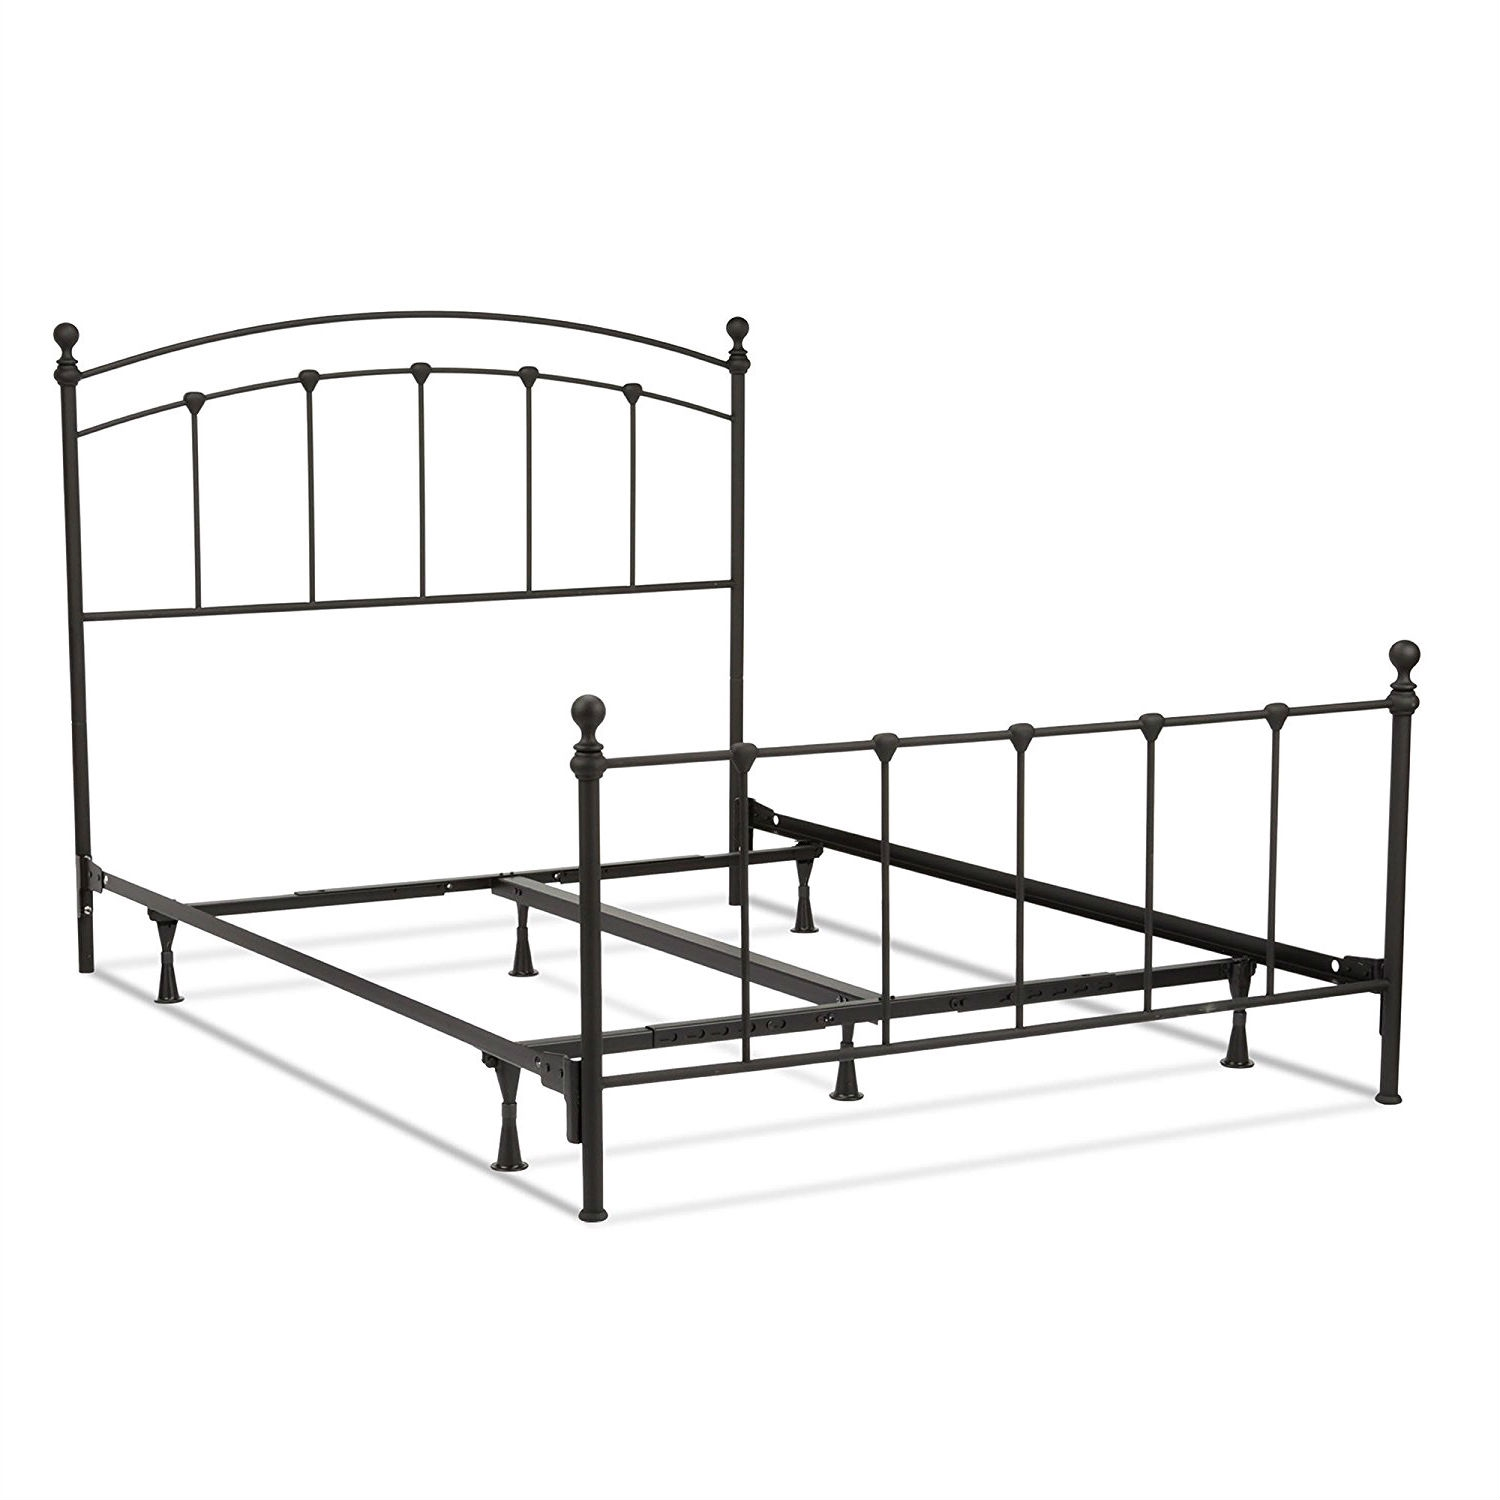 Full Size Complete Metal Bed Frame With Round Final Posts Headboard And Footboard Fastfurnishings Com